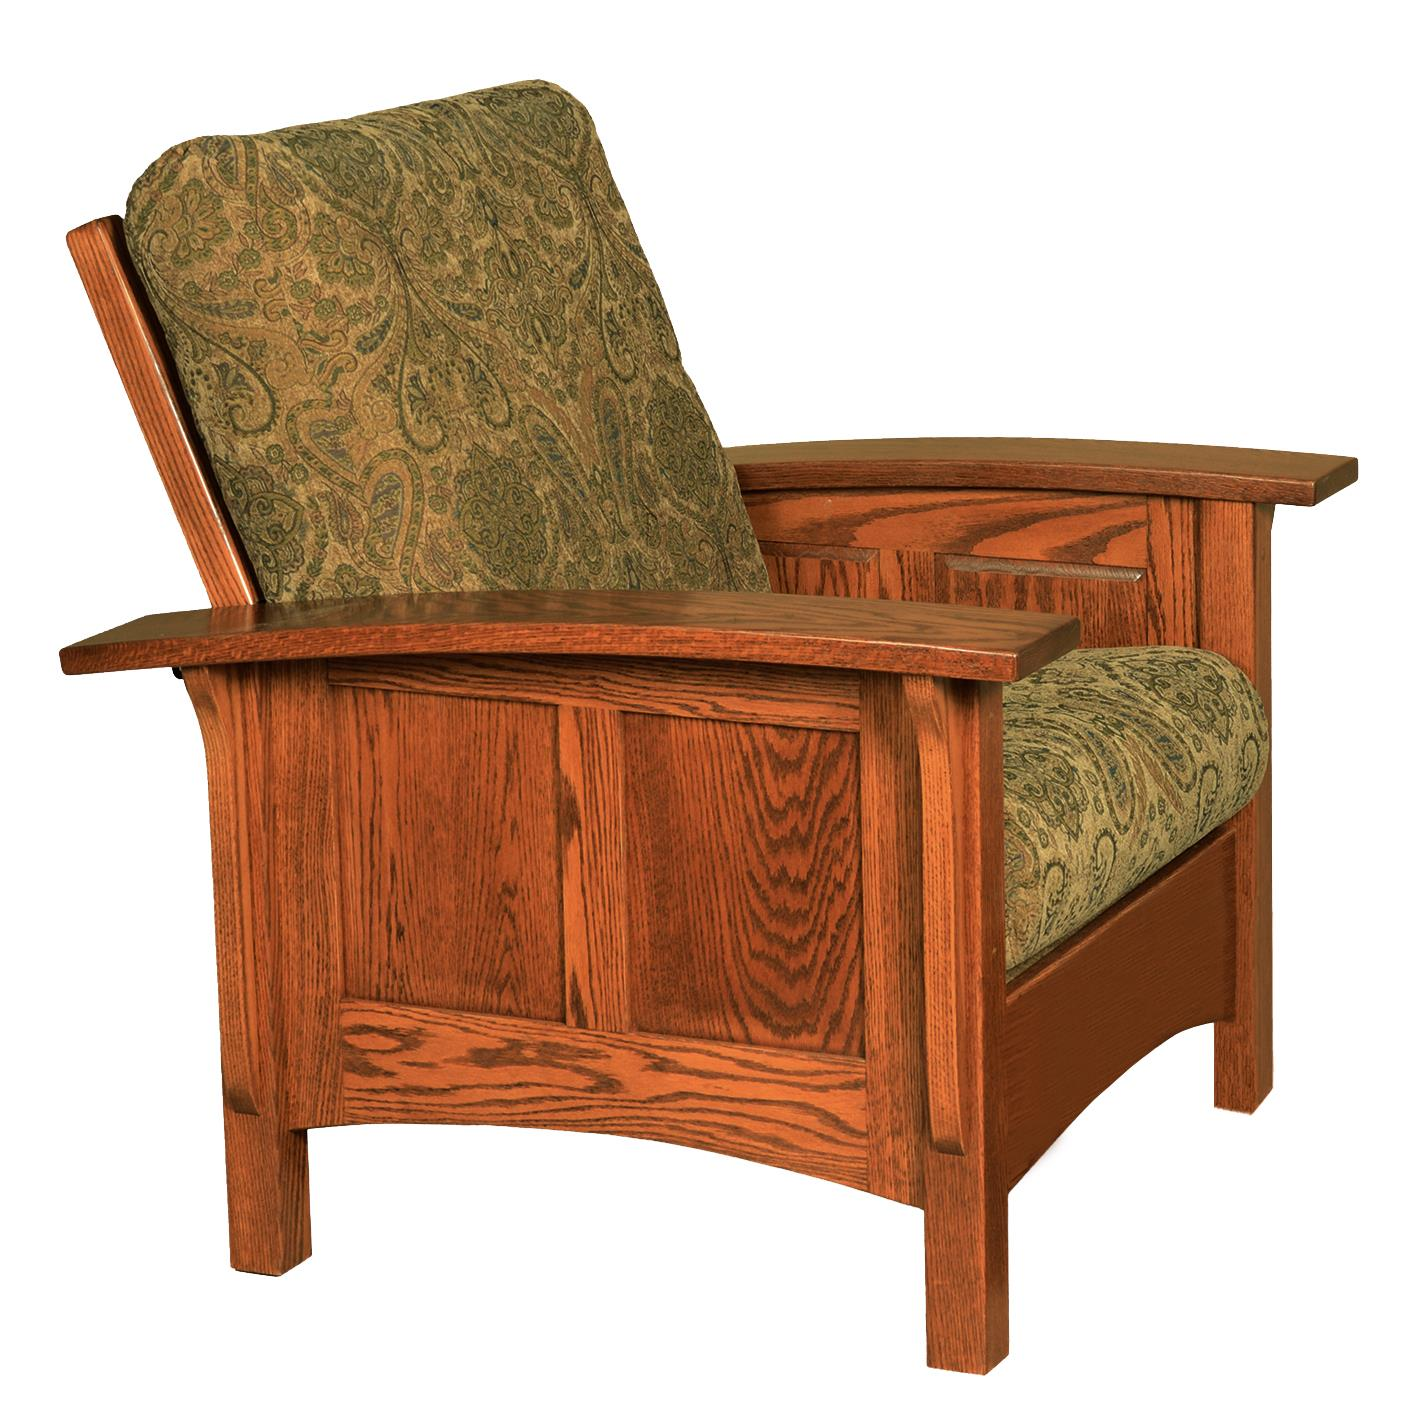 amish paneled mission morris chair GLWXCPB